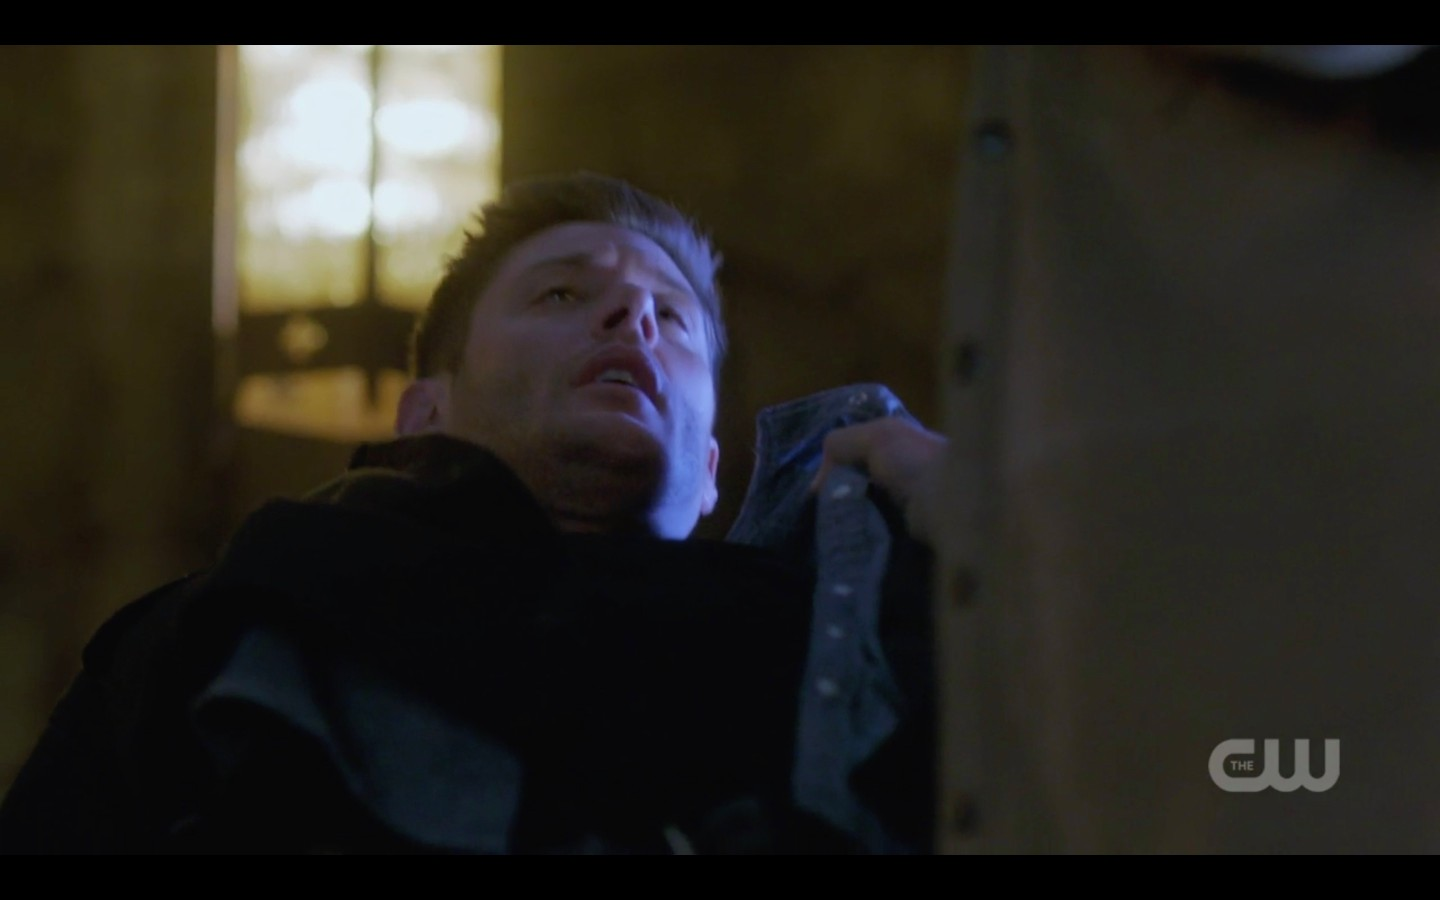 dean winchester pulling knife out for lucifer season 13 finale